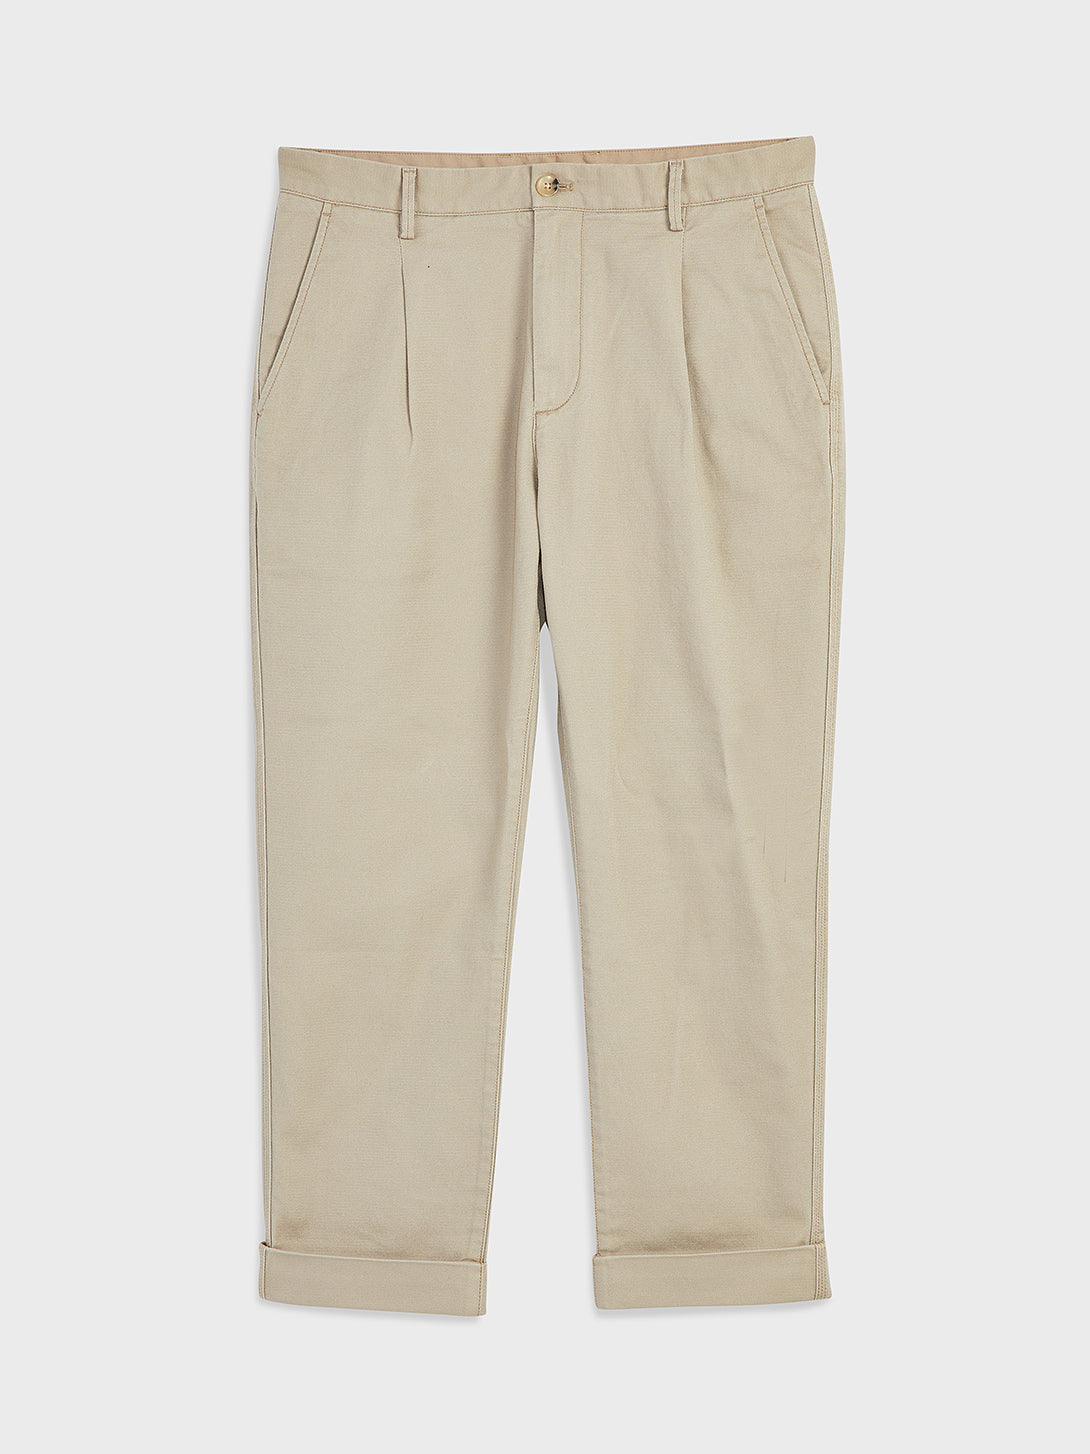 ONS Clothing Men's MODERN CHINO in KHAKI